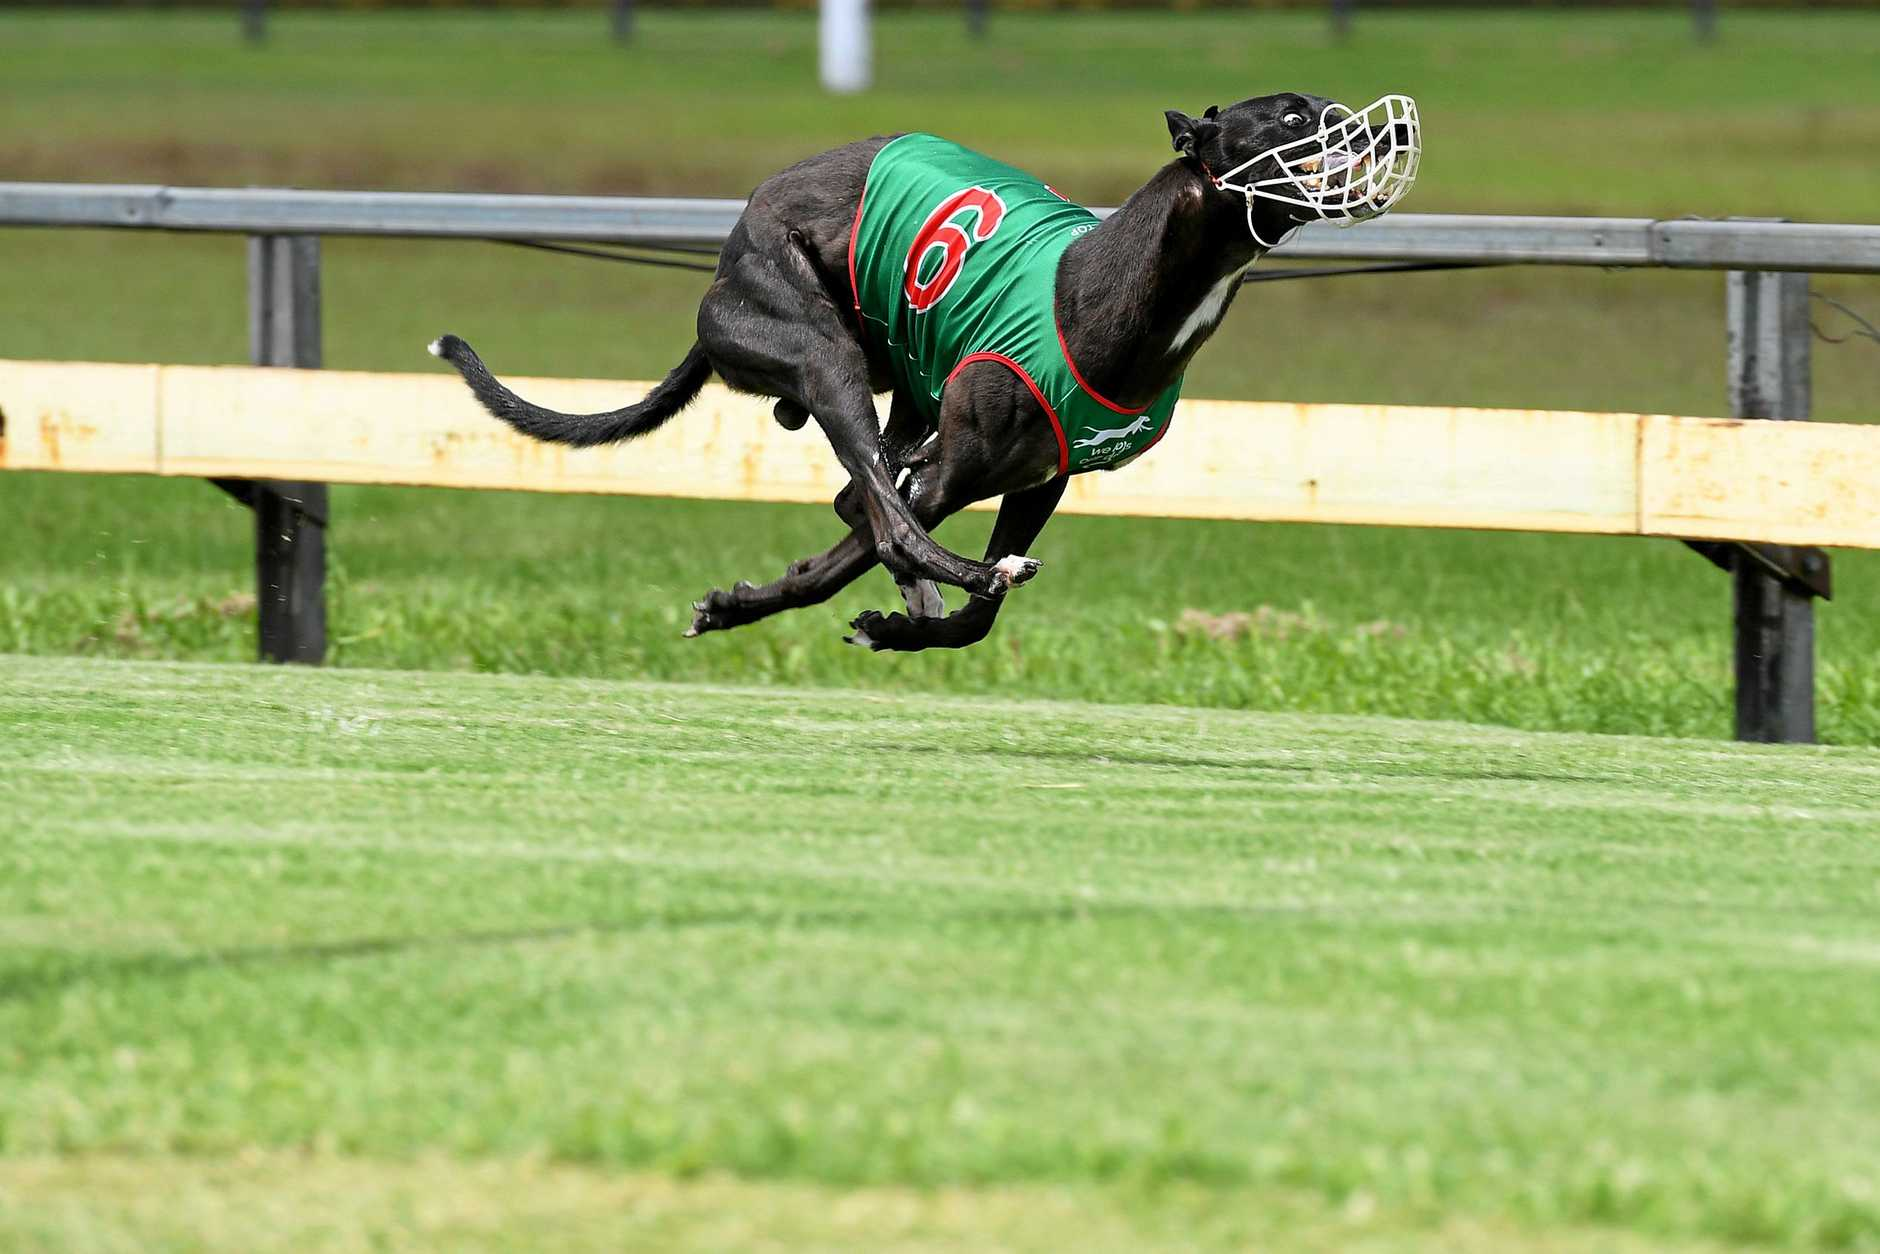 GREYHOUND RACING: Bundy greyhounds like Fire Fly Jake are set to feature more prominently with Thabeban Park races to be shown live on Sky Racing.